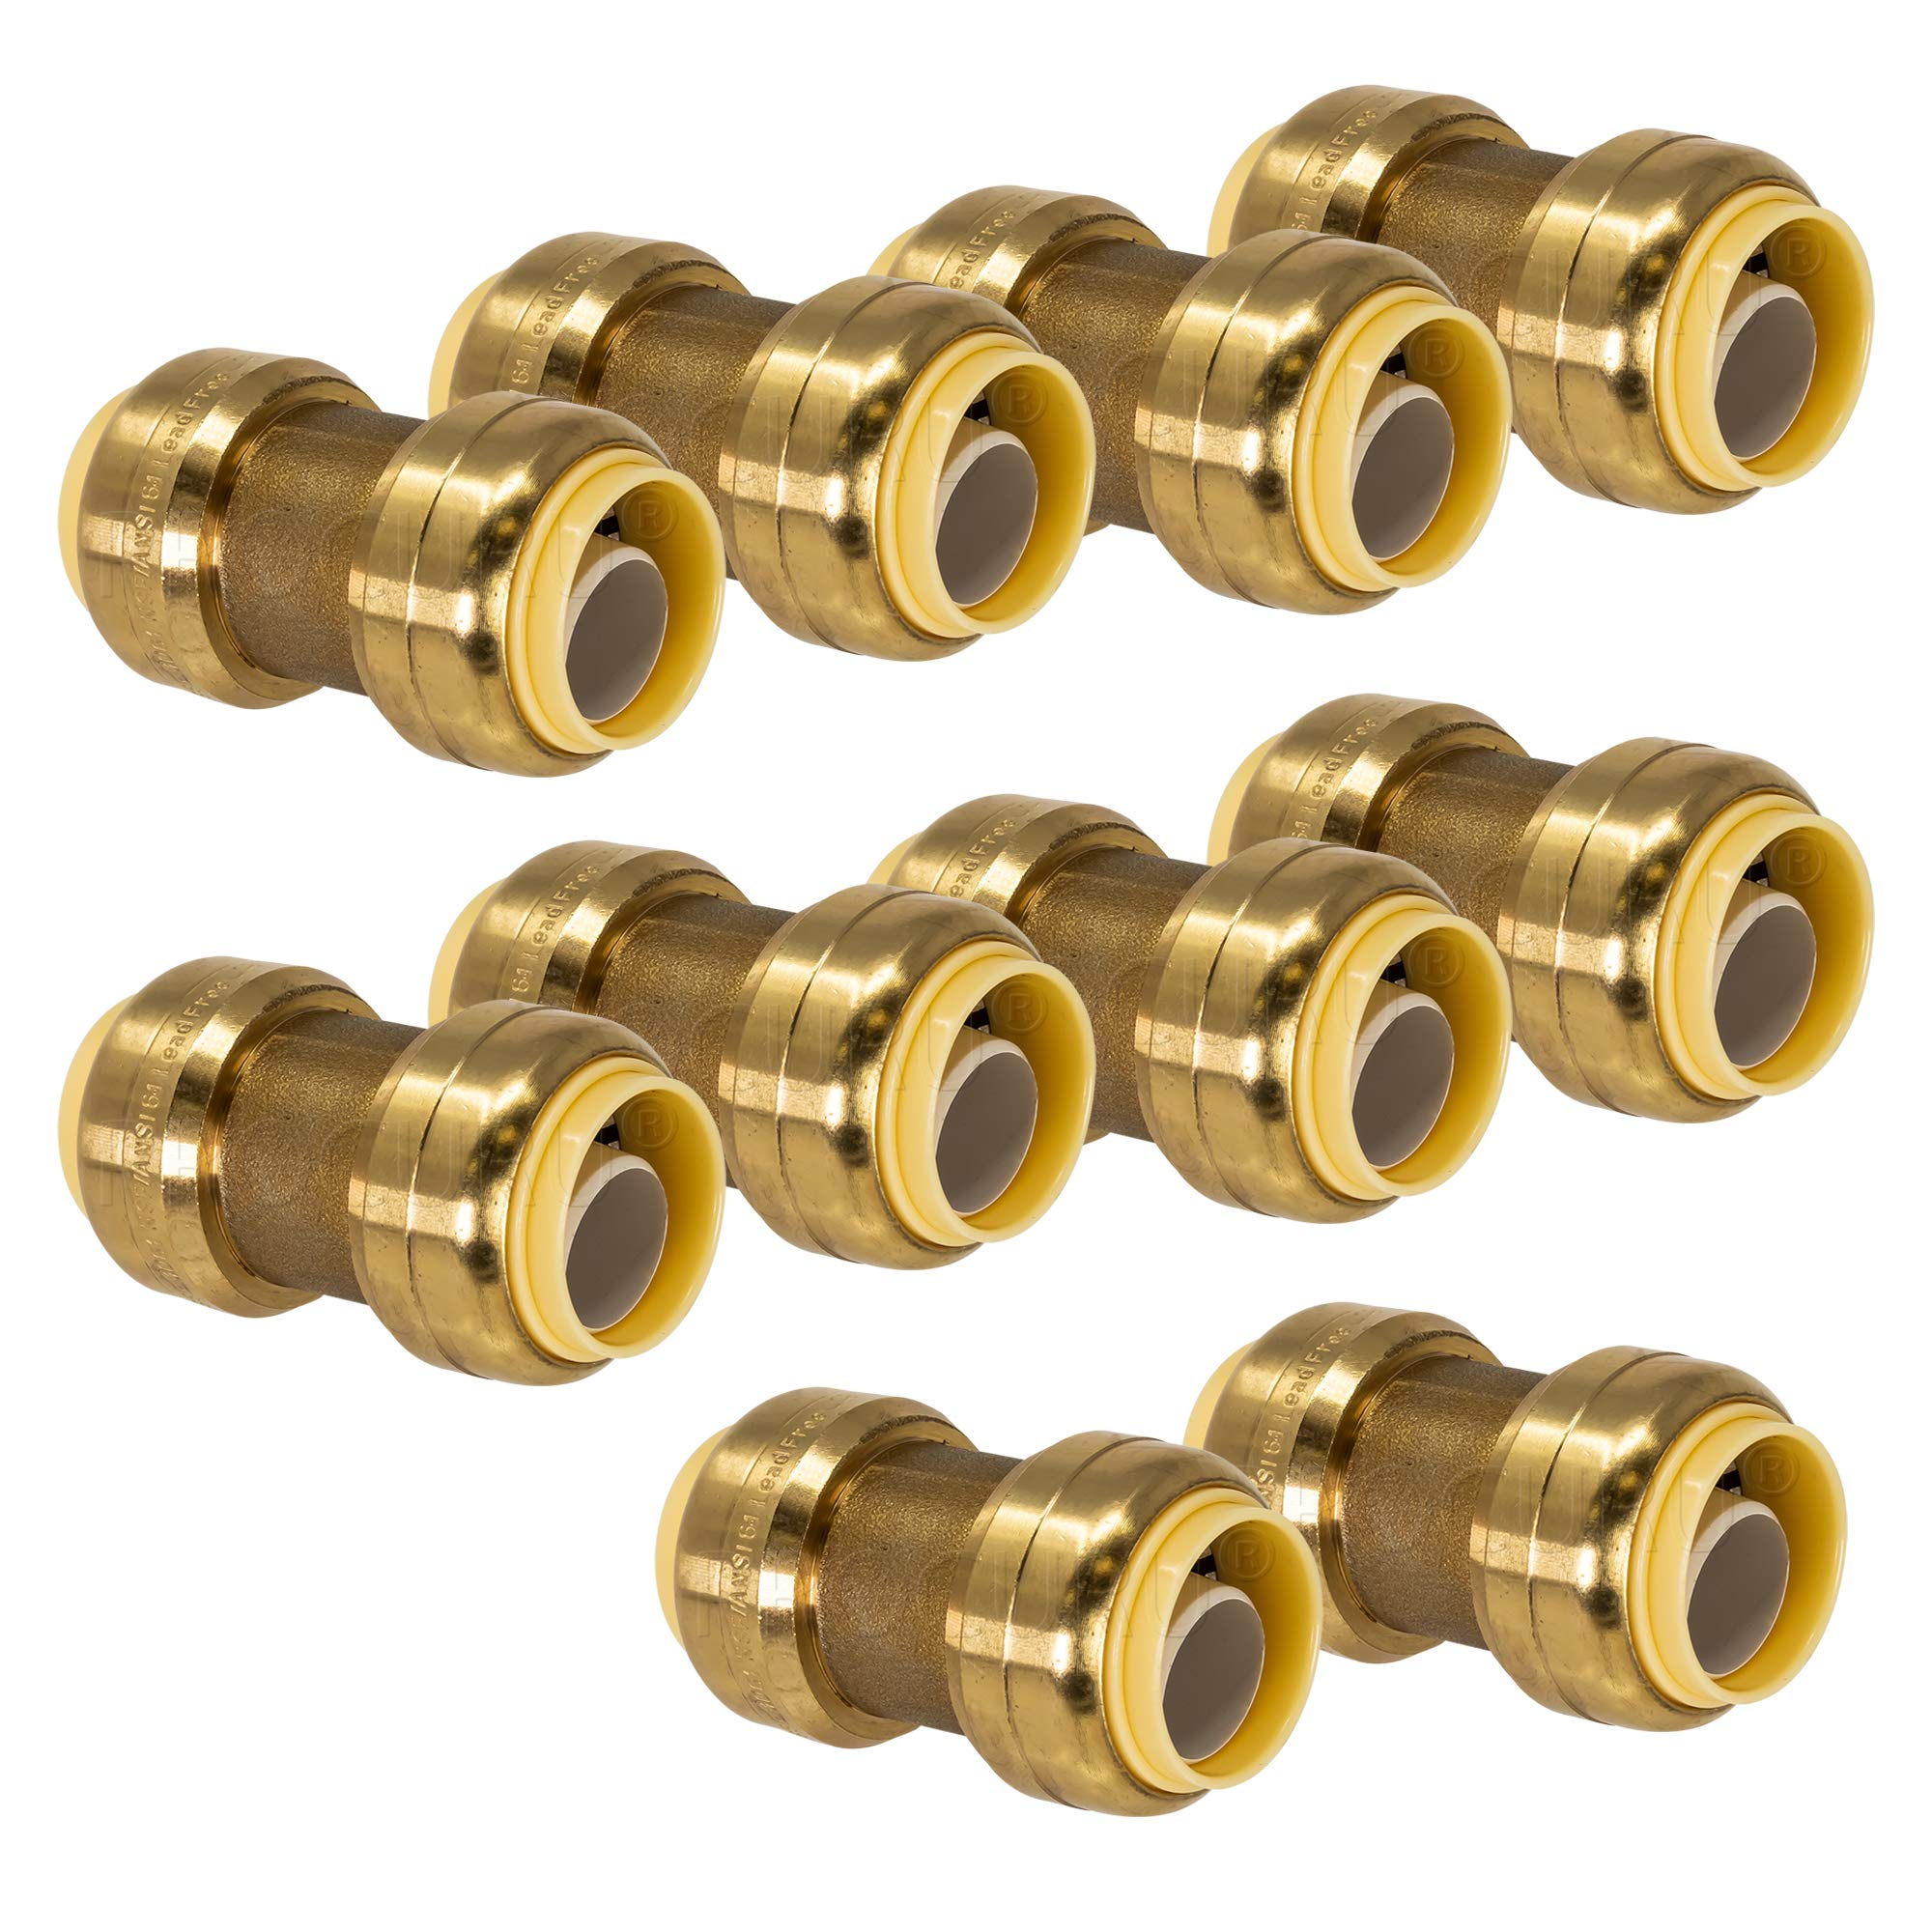 PROCURU 1/2-Inch PushFit Coupling - Push-to-Connect Plumbing Fitting for Copper, PEX, CPVC, Lead Free Certified (0.5 Inch (1/2''), 10-Pack) by PROCURU